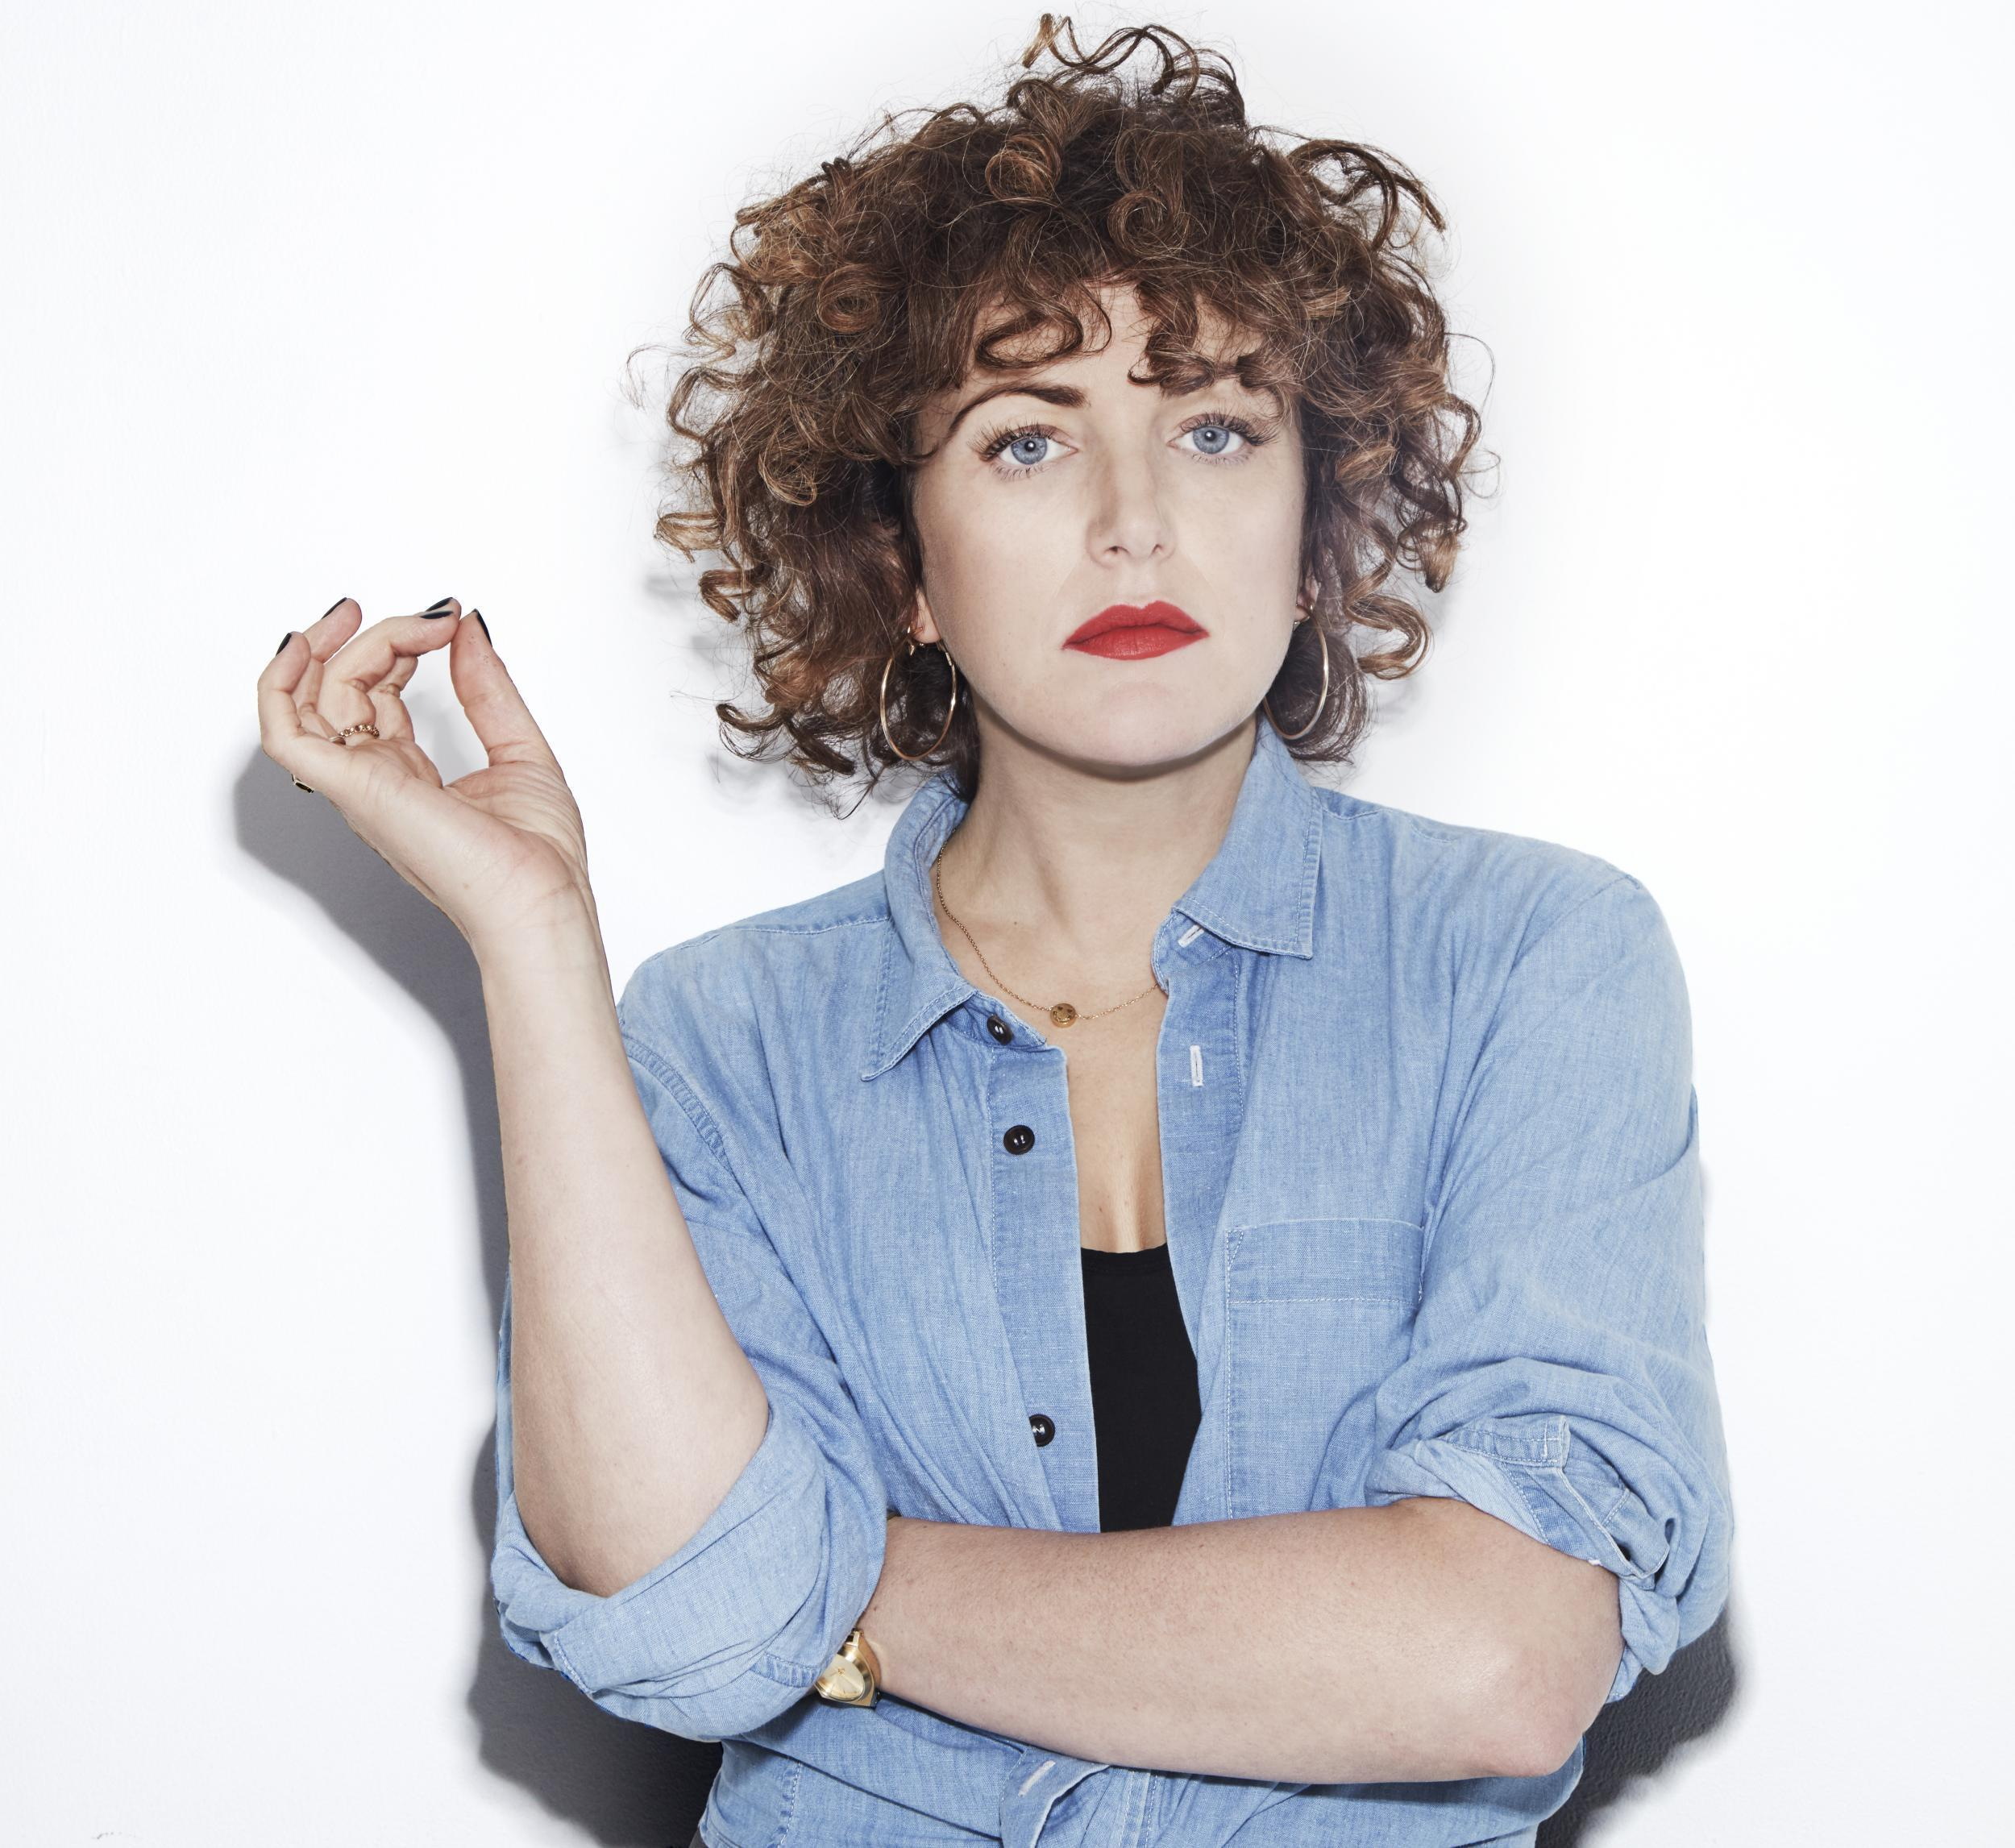 the tastemaker annie mac on amp sounds festival lineups